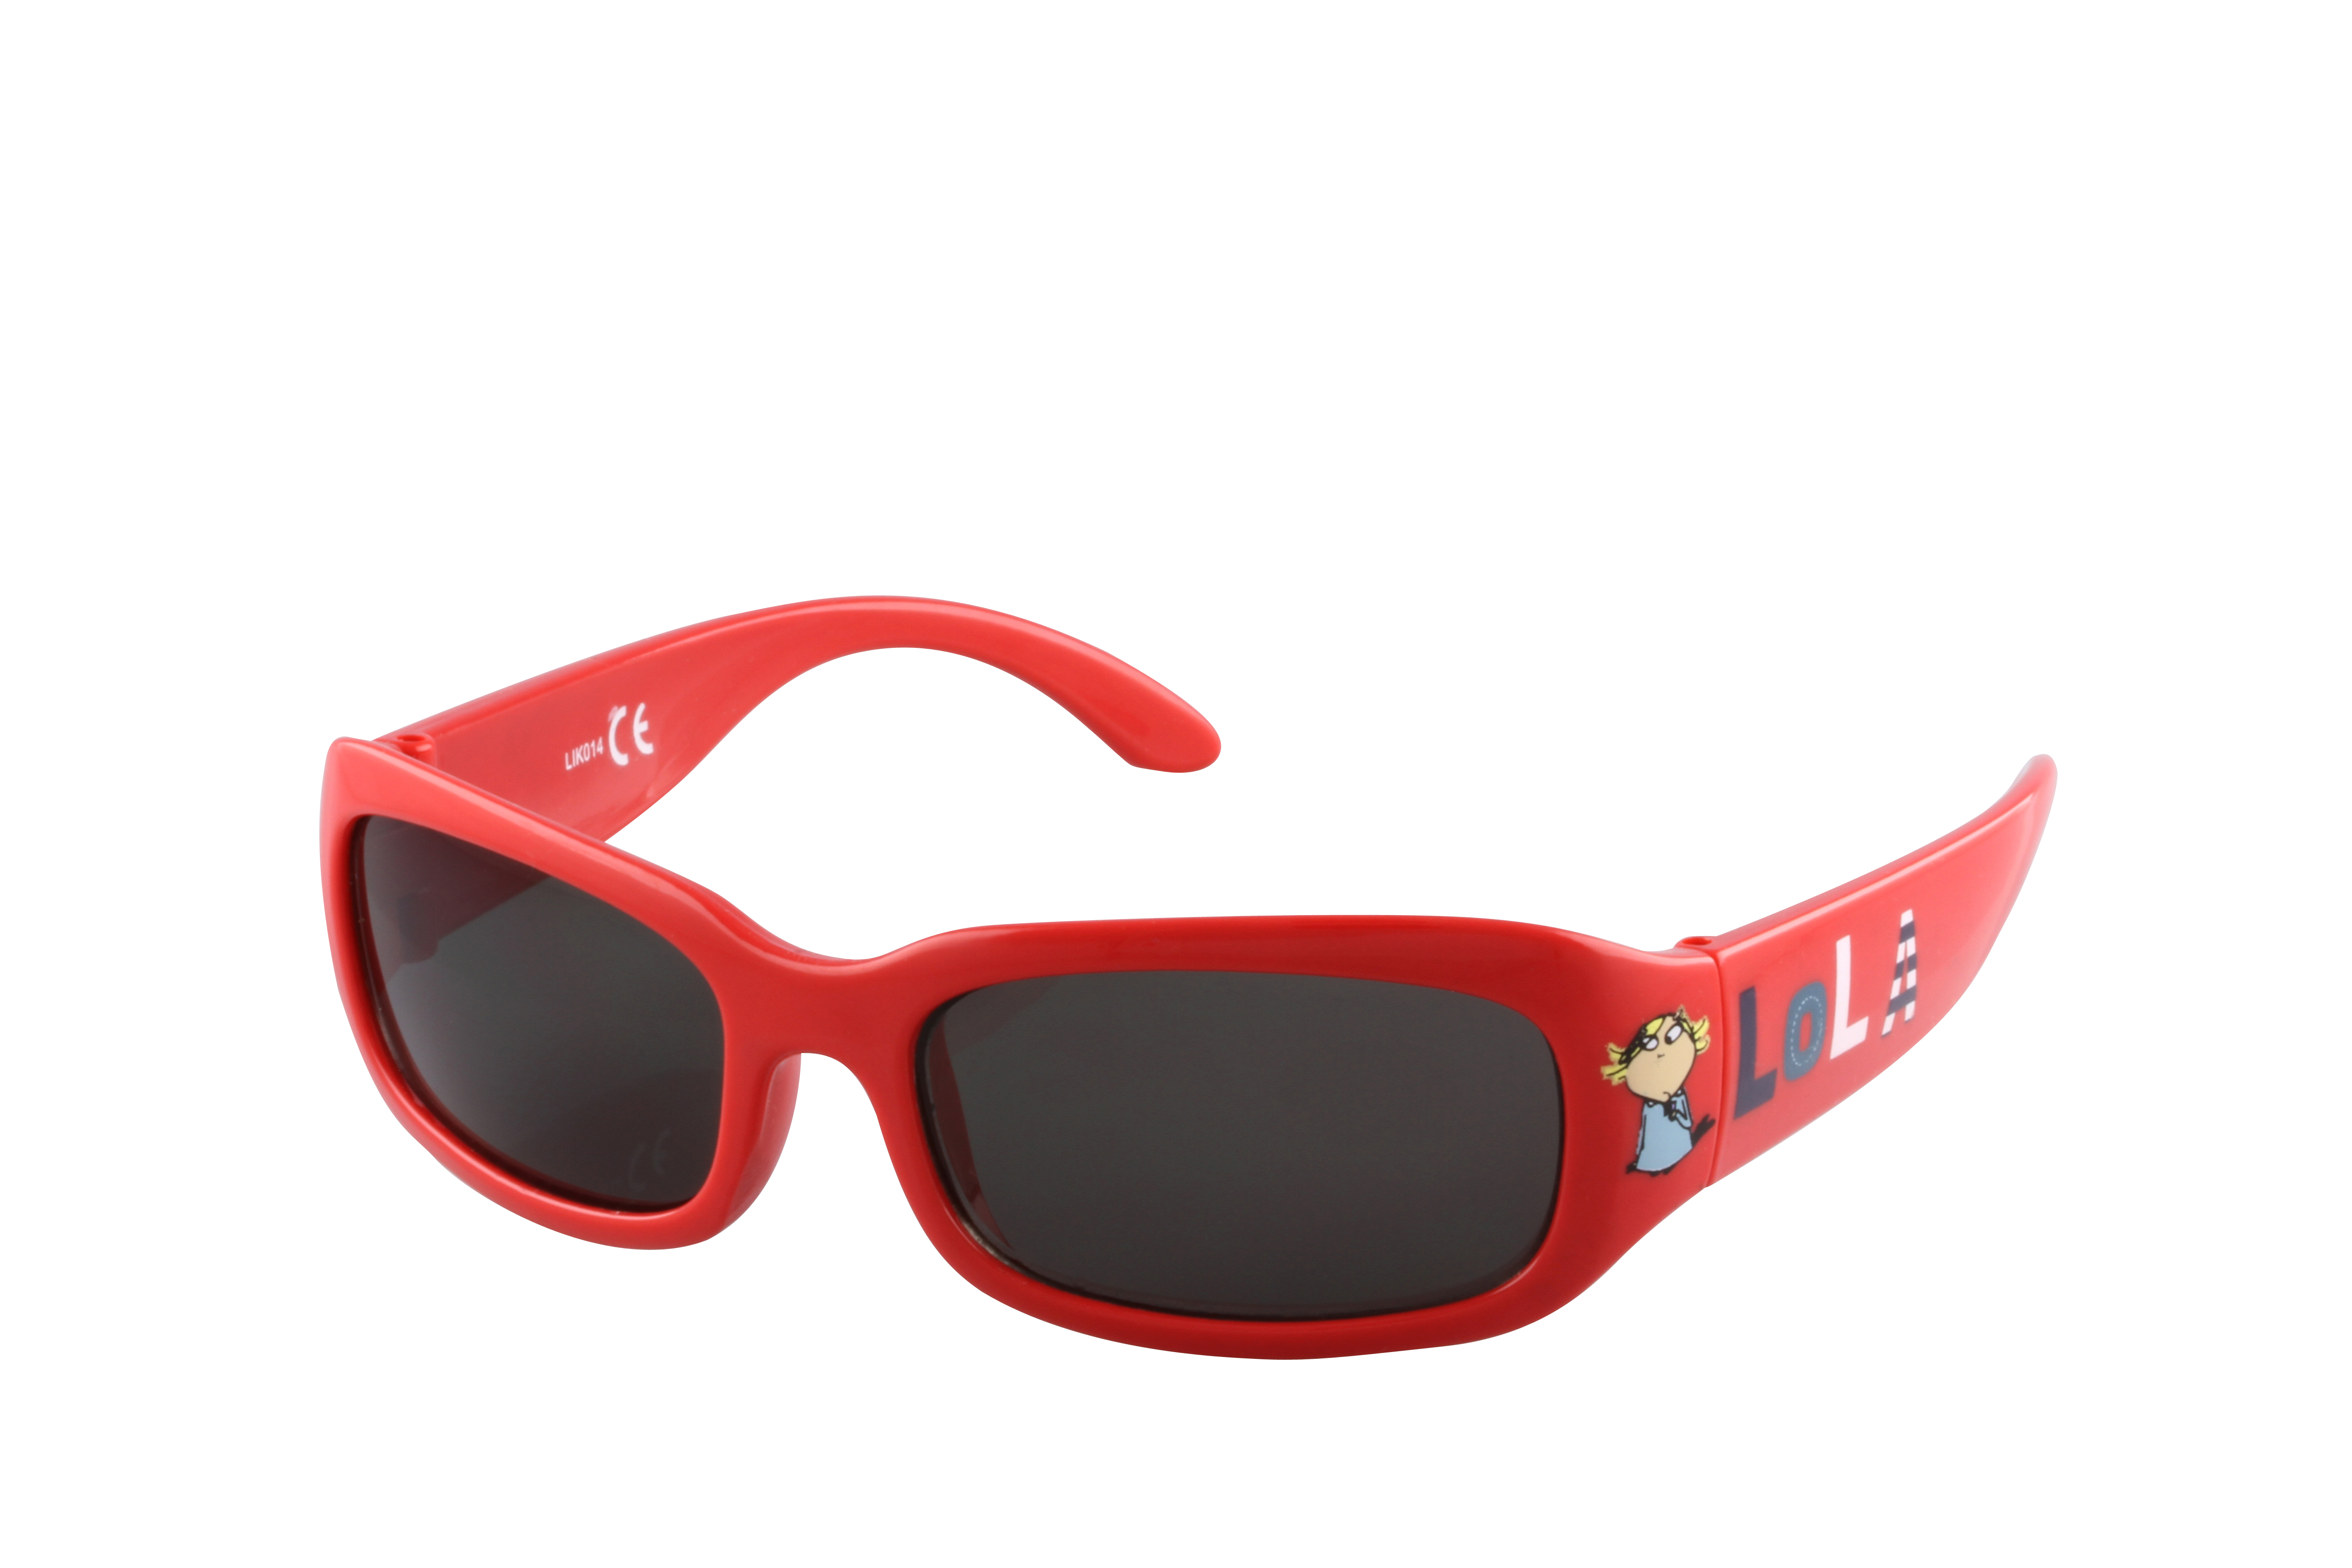 boots children's sunglasses